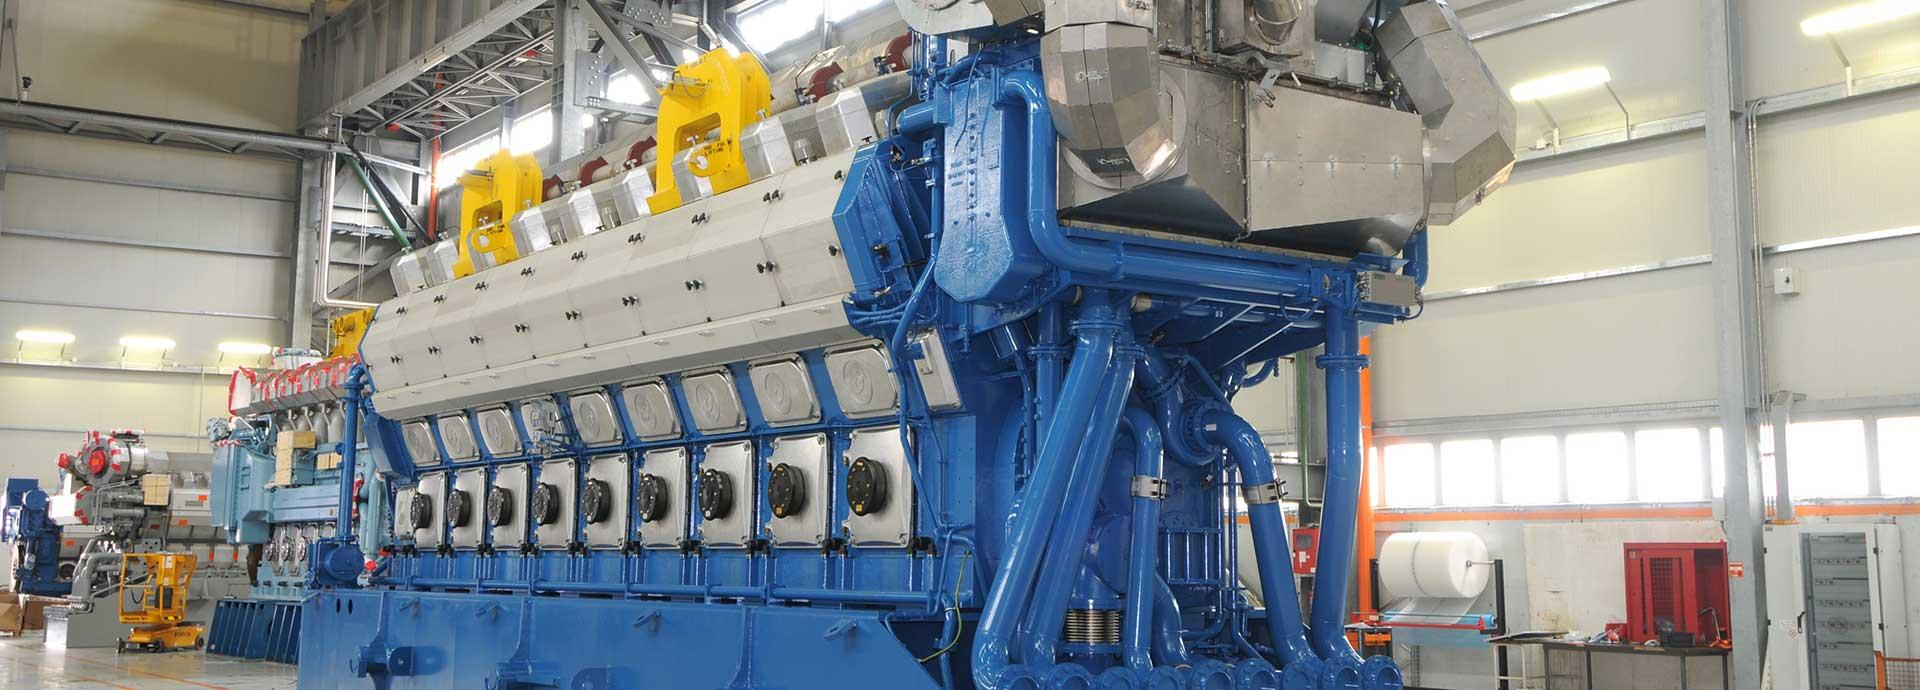 Evaluating internal combustion engine's performance